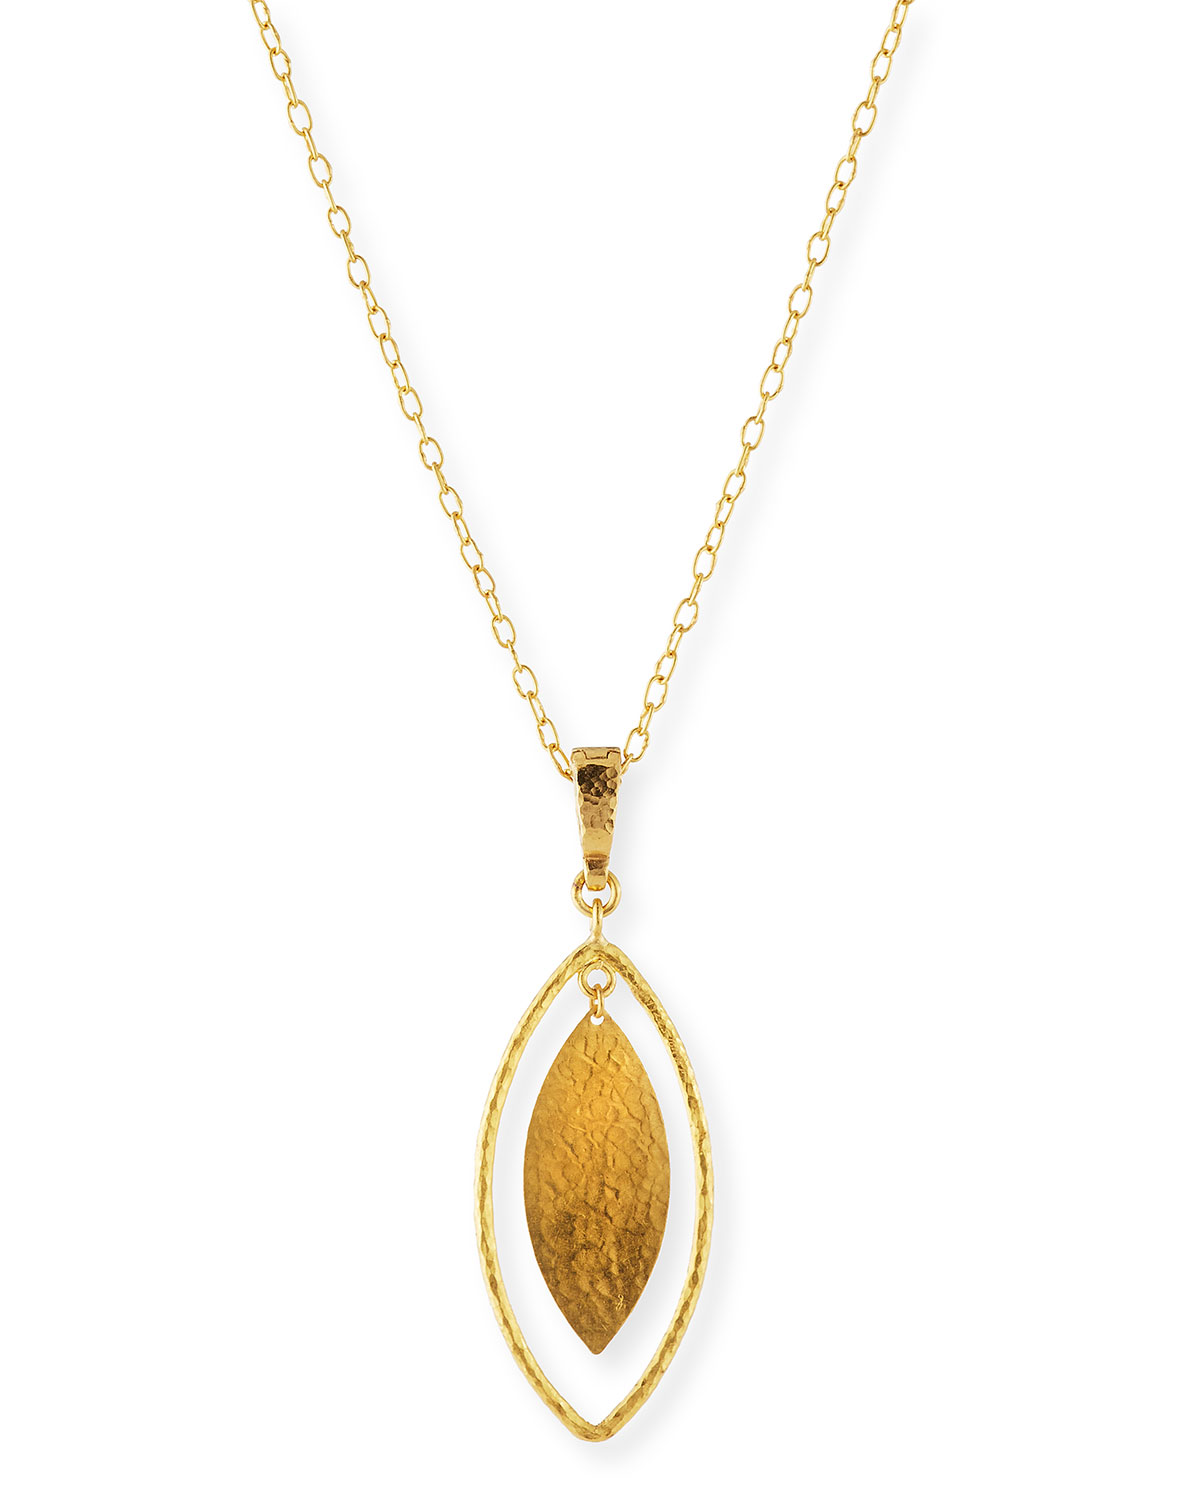 Gurhan willow geo 24k gold pendant necklace neiman marcus willow geo 24k gold pendant necklace aloadofball Images